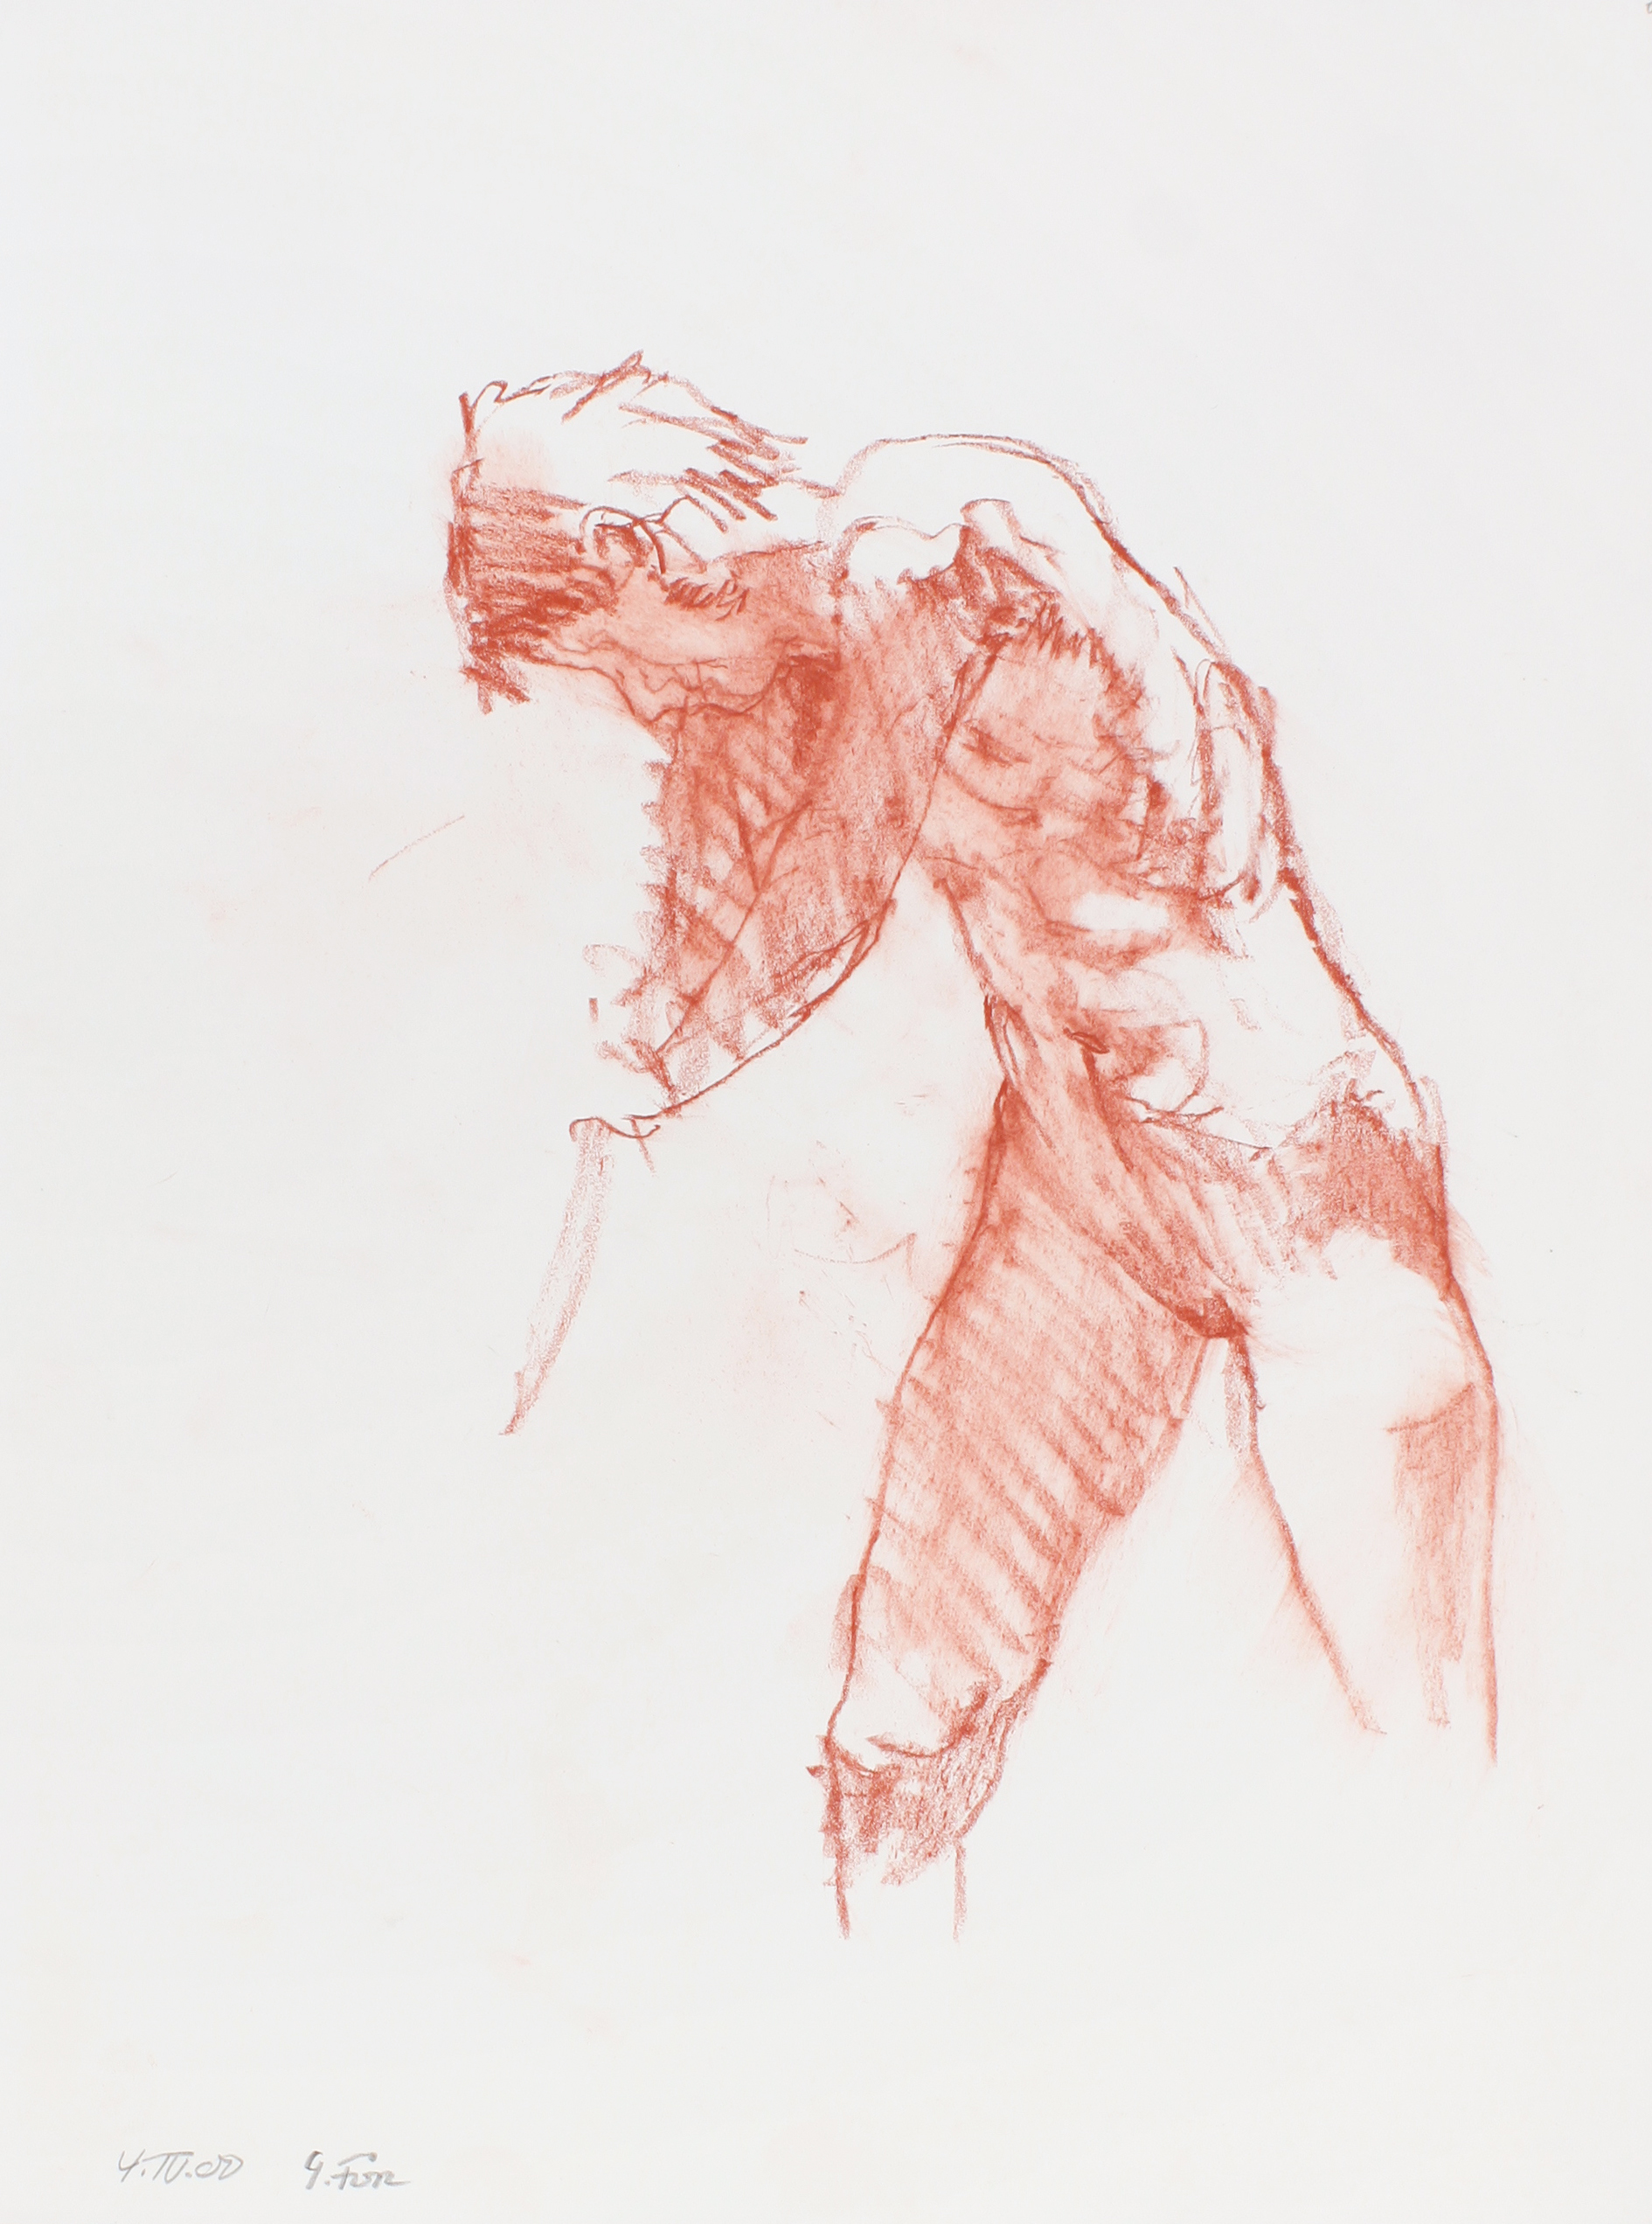 2000_Standing_Nude_in_Profile_with_Cropped_Legs_red_conté_on_paper_15x11in_WPF558.jpg